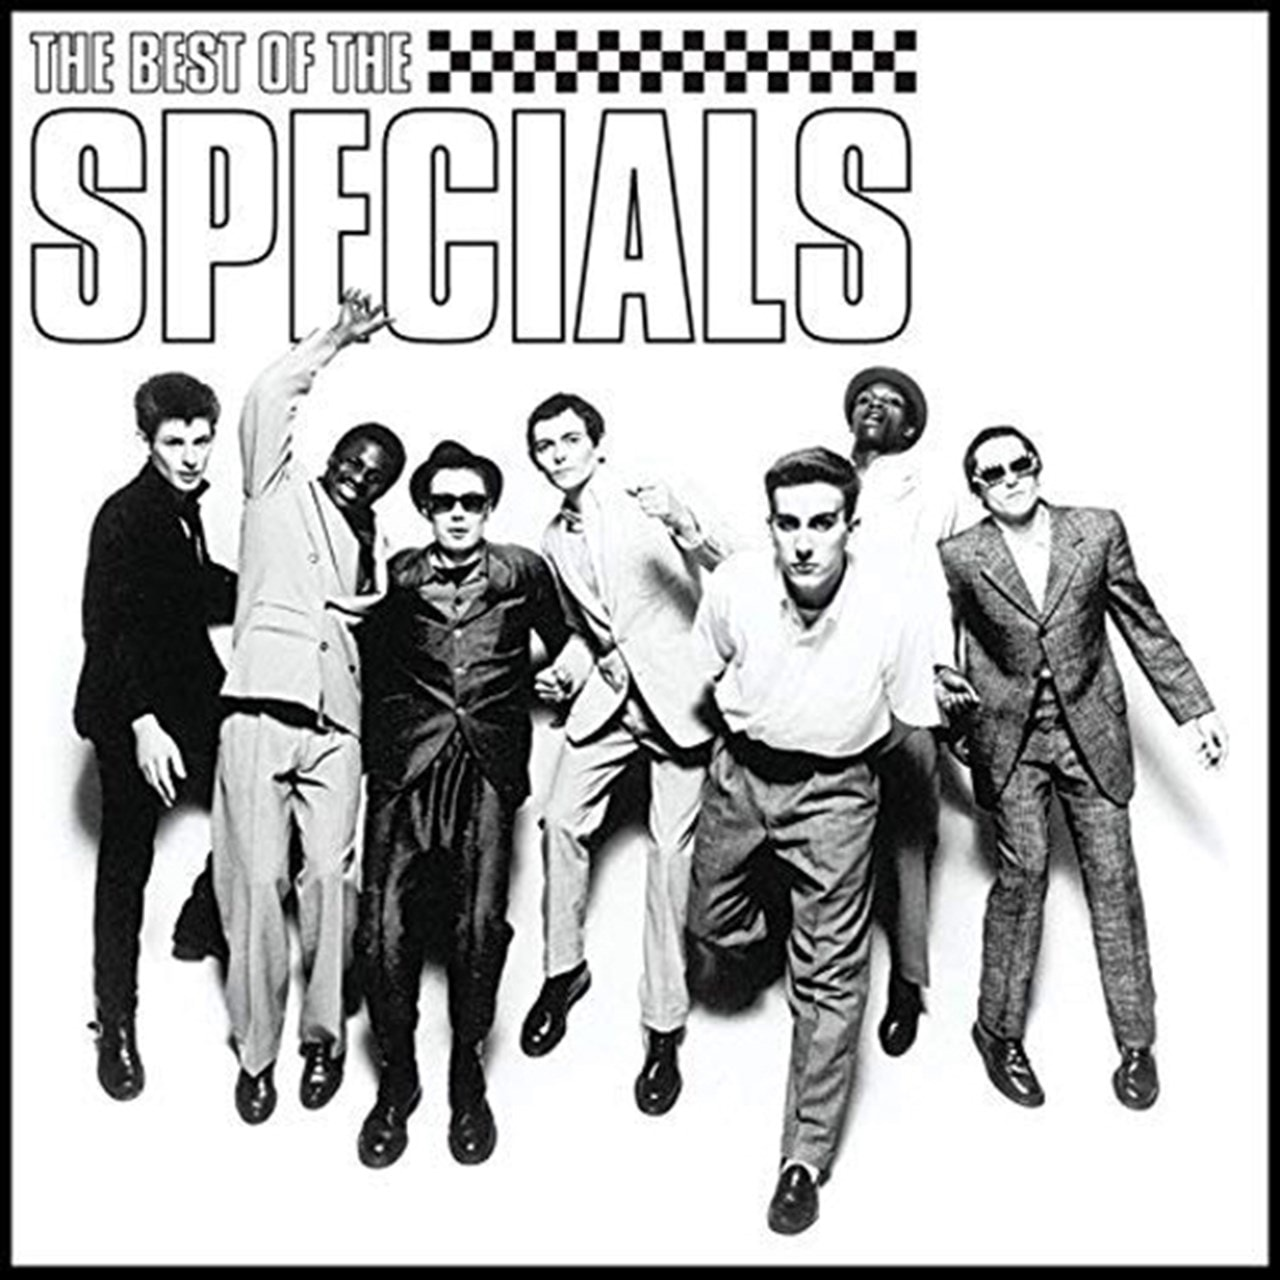 The Best of the Specials - 1